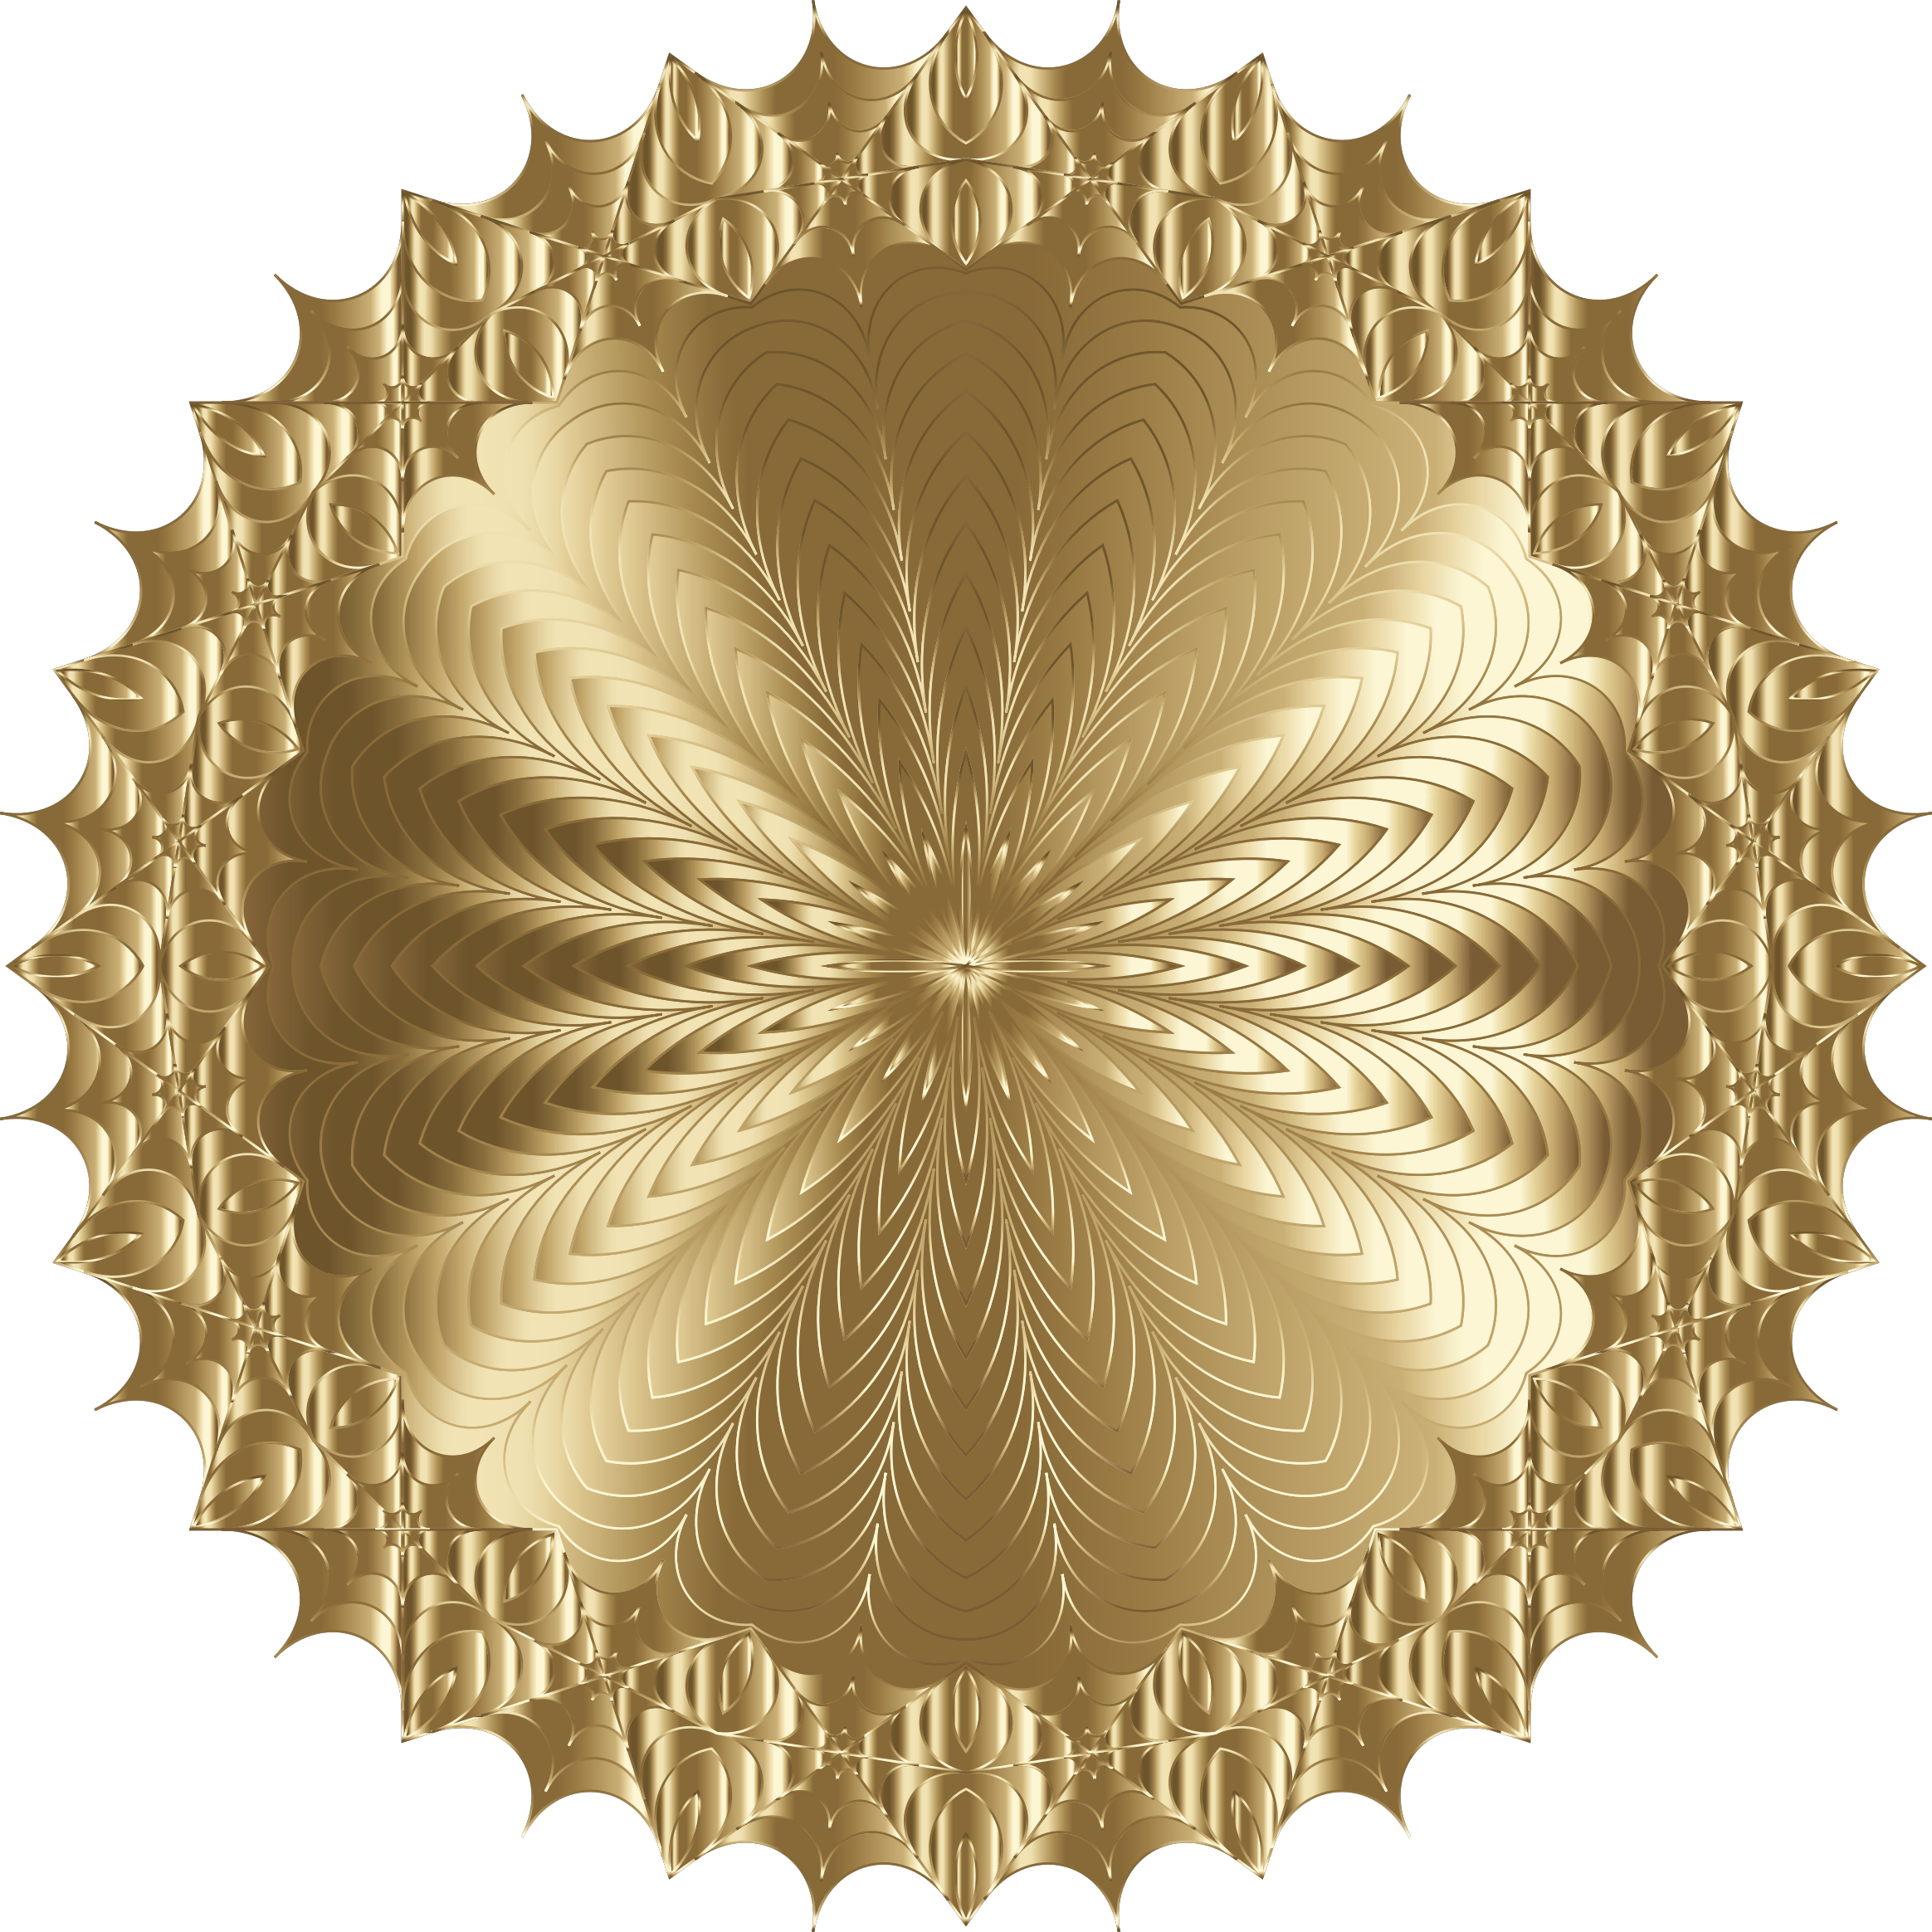 Mandala Line Art Design Gold by GDJ